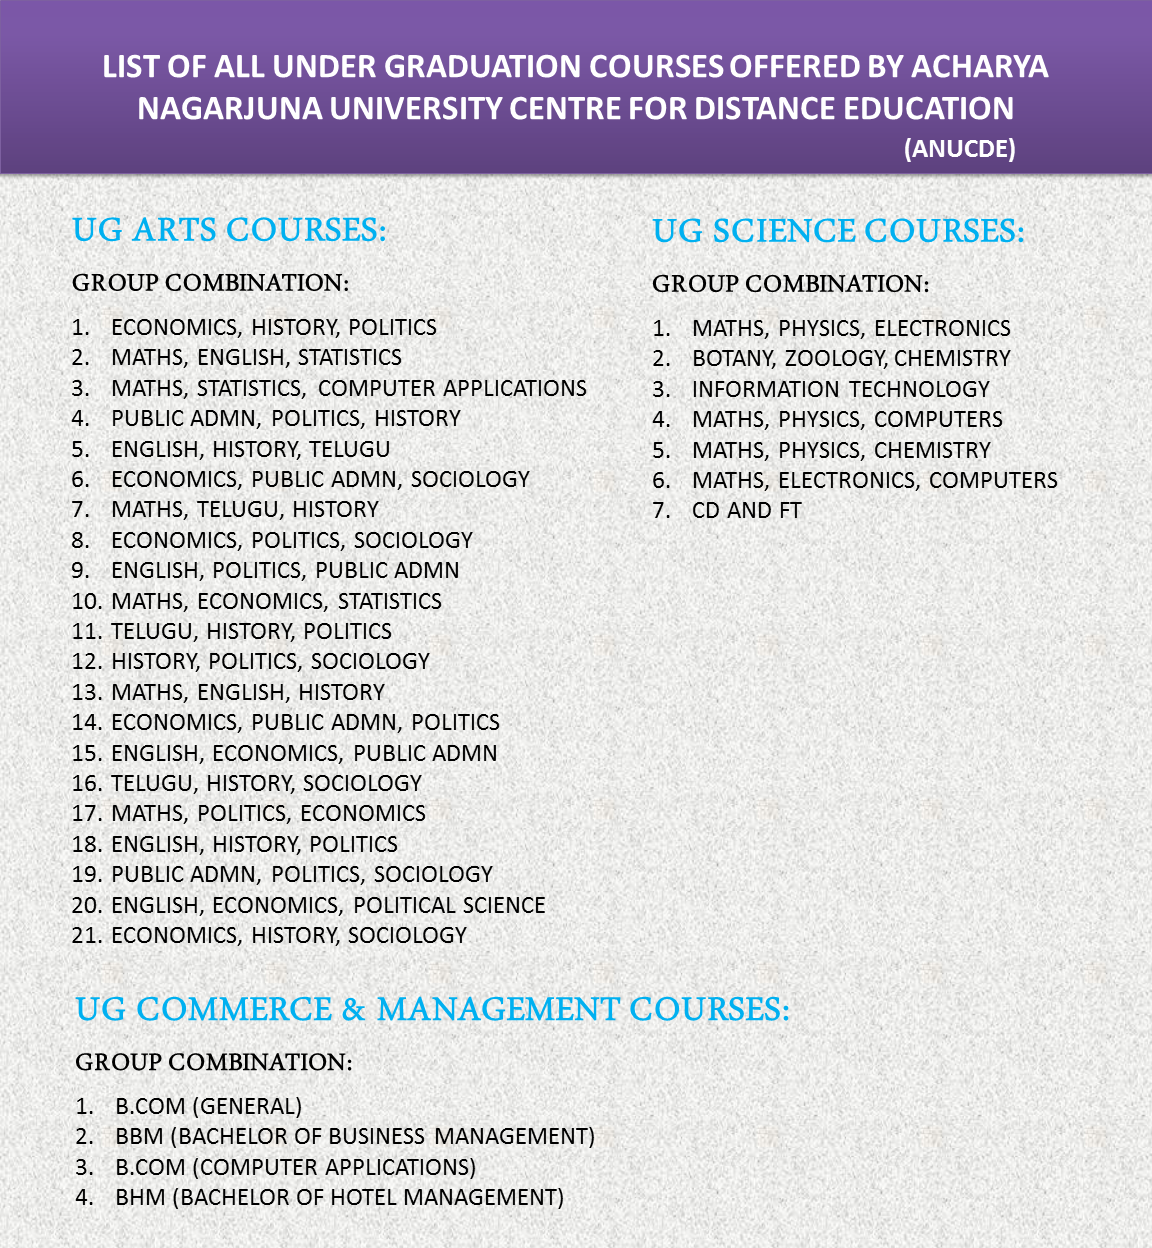 LIST OF ALL UNDER GRADUATION COURSES OFFERED BY ACHARYA NAGARJUNA UNIVERSITY CENTRE FOR DISTANCE EDUCATION